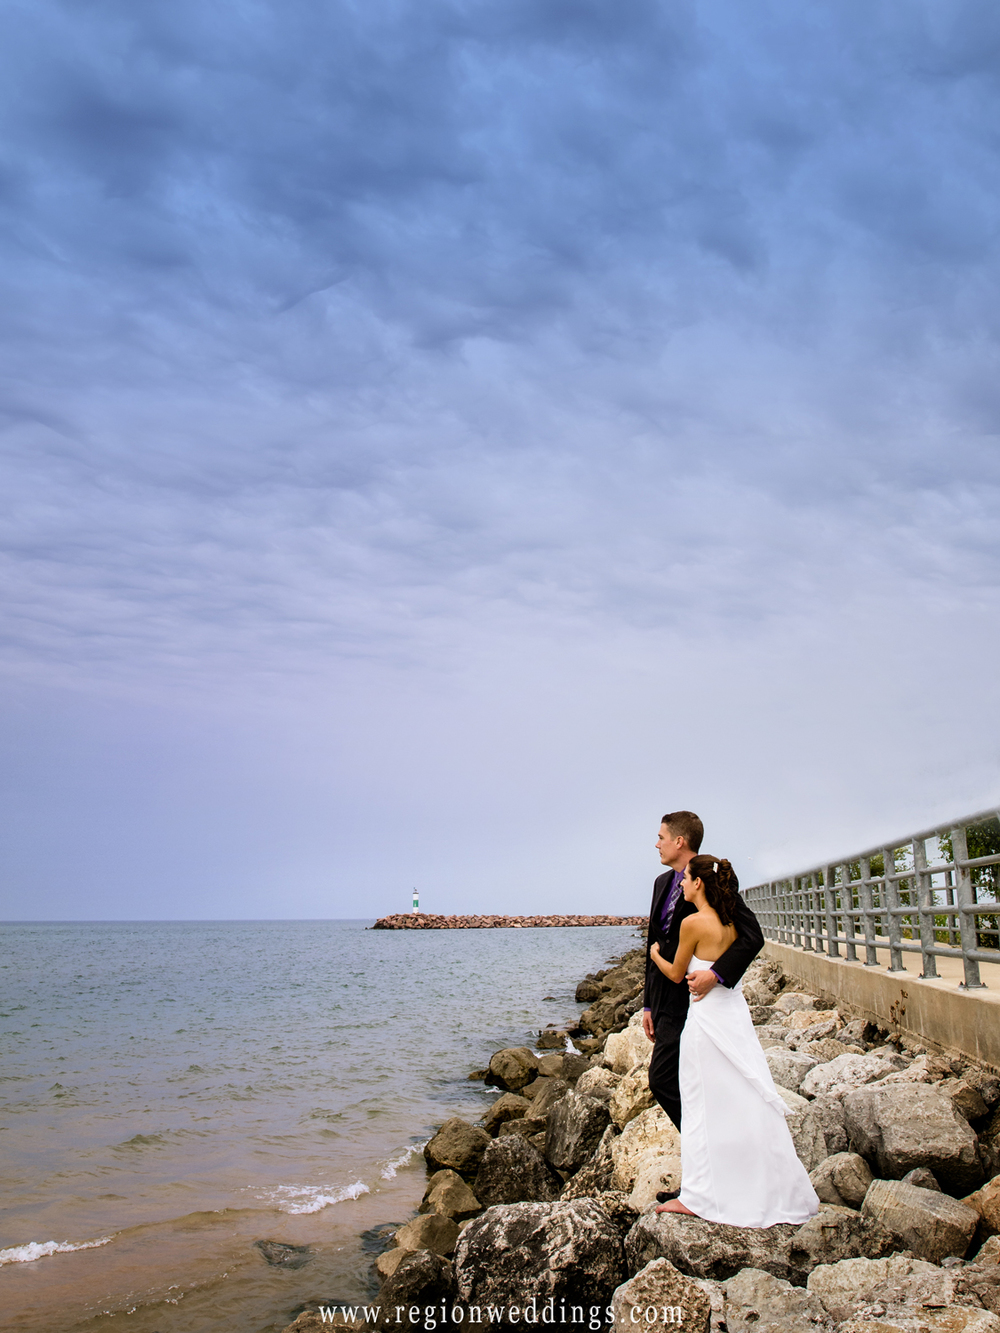 A dark and dramatic sky looms over the bride and groom for their wedding photo at Portage River Walk.